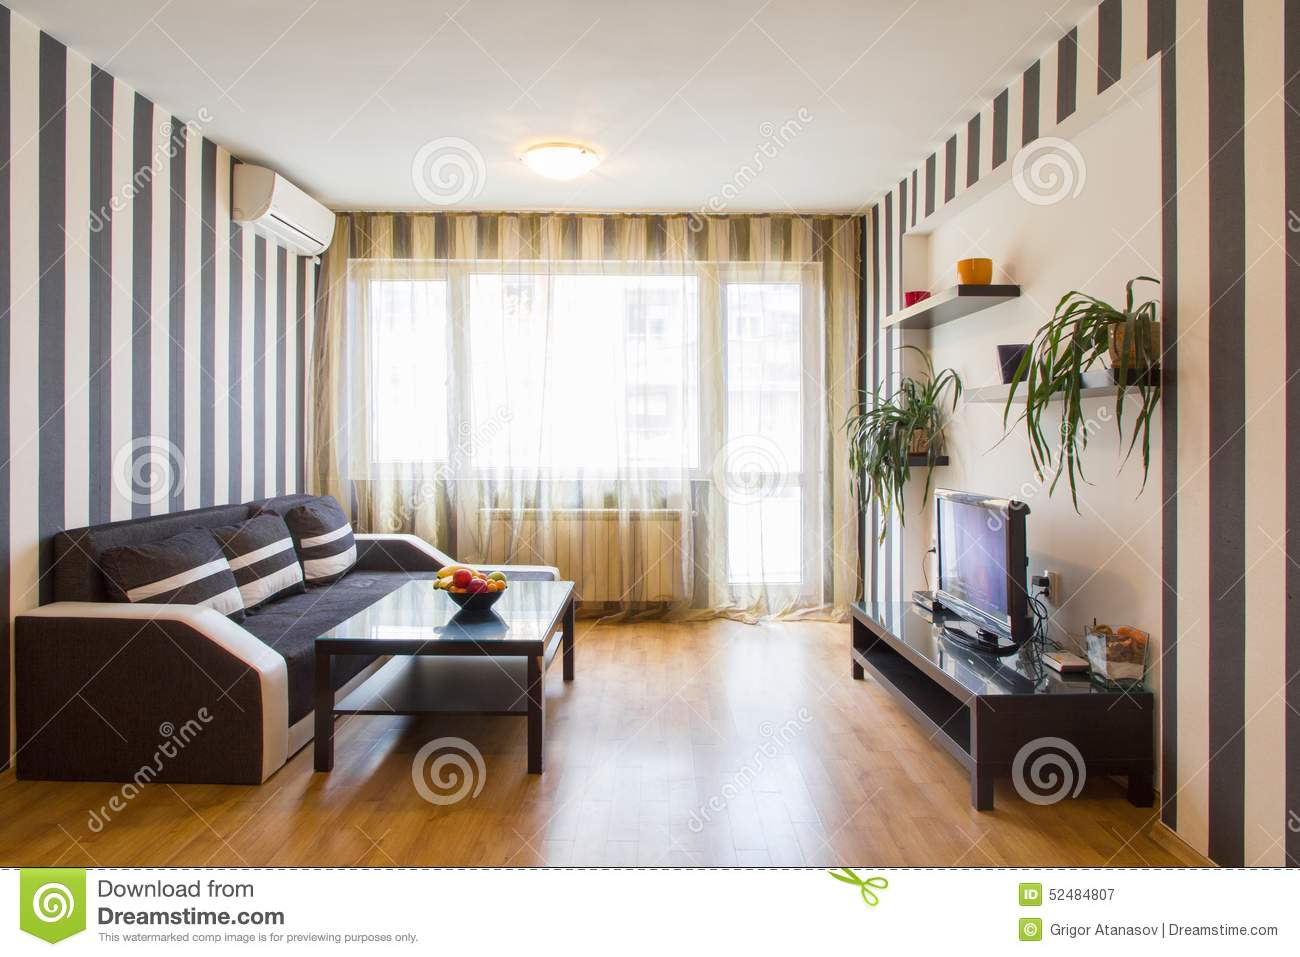 Royalty vrije stock fotografie living room with black and white striped walls afbeelding 52484807 - Afbeelding eigentijdse woonkamer ...